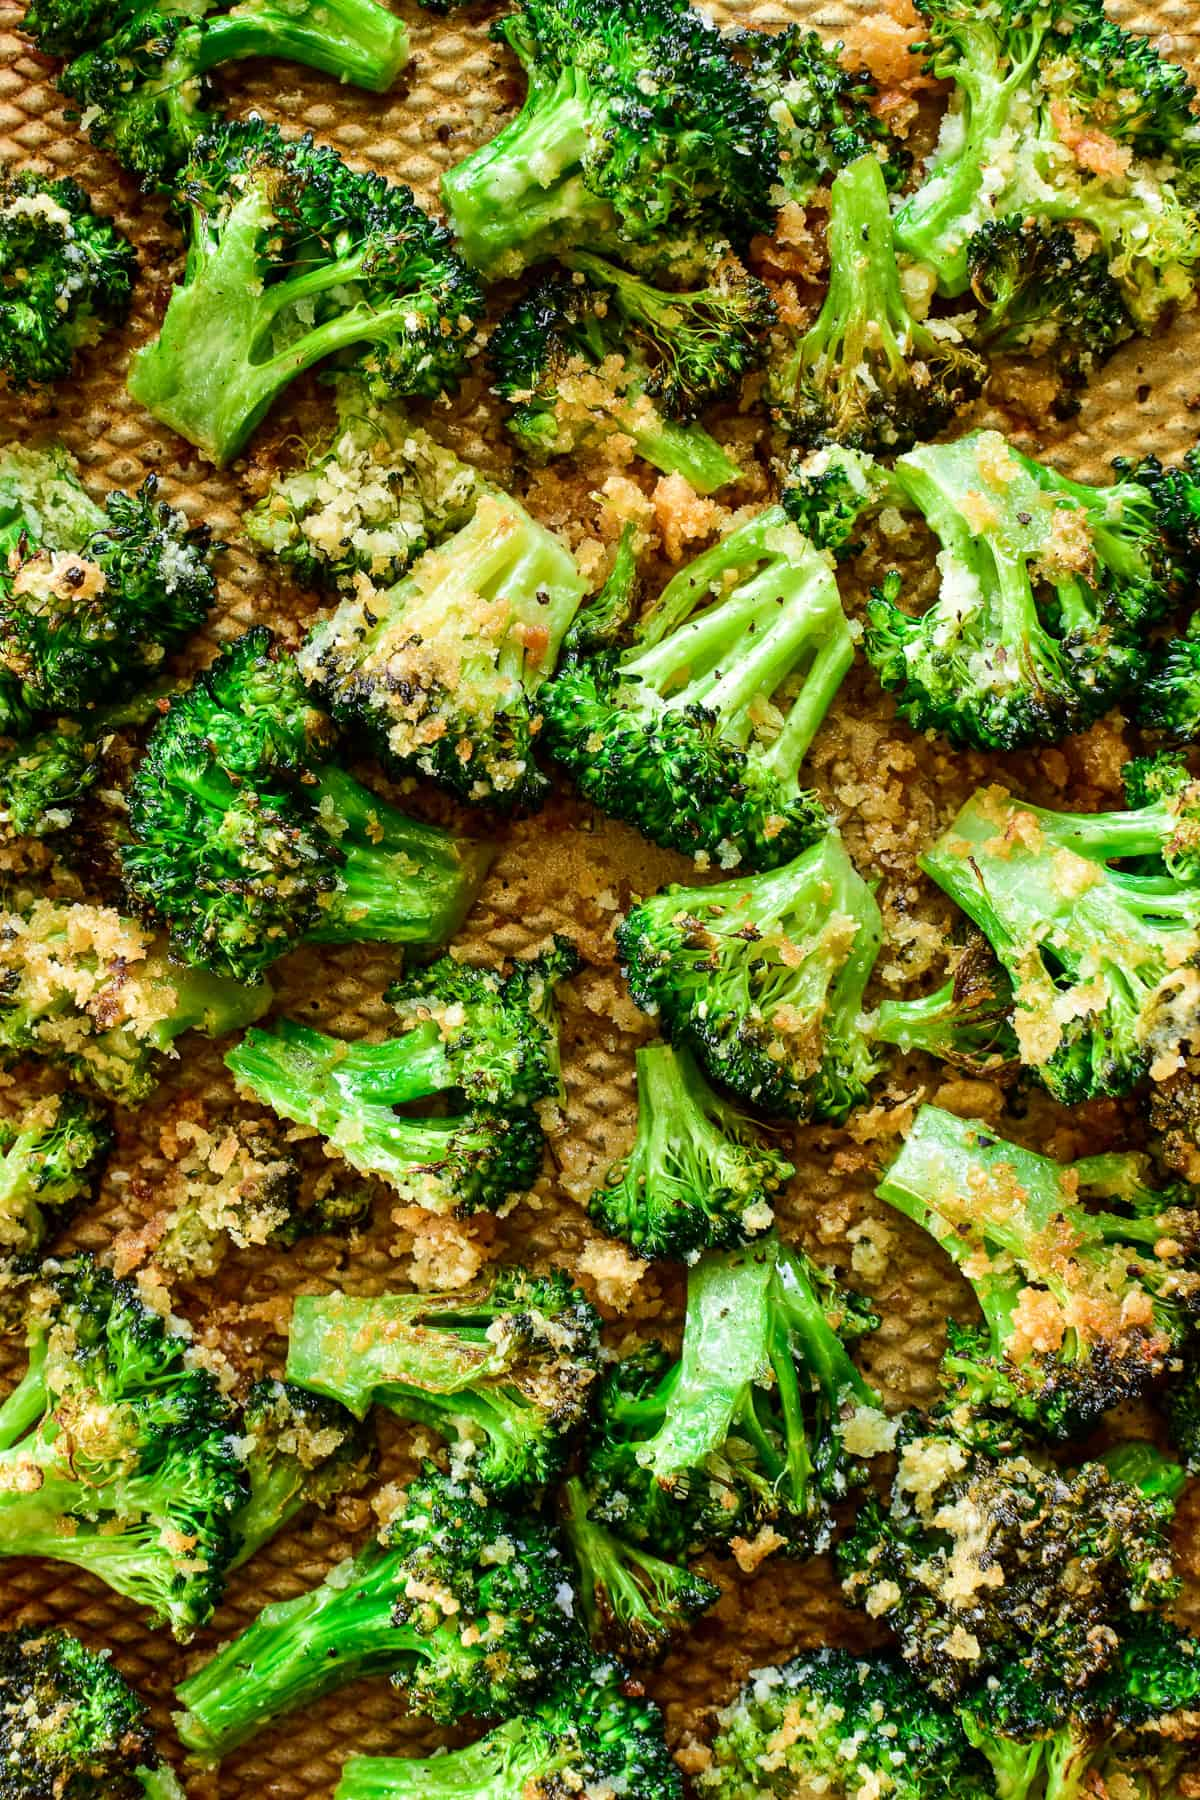 Parmesan Roasted Broccoli on a baking sheet